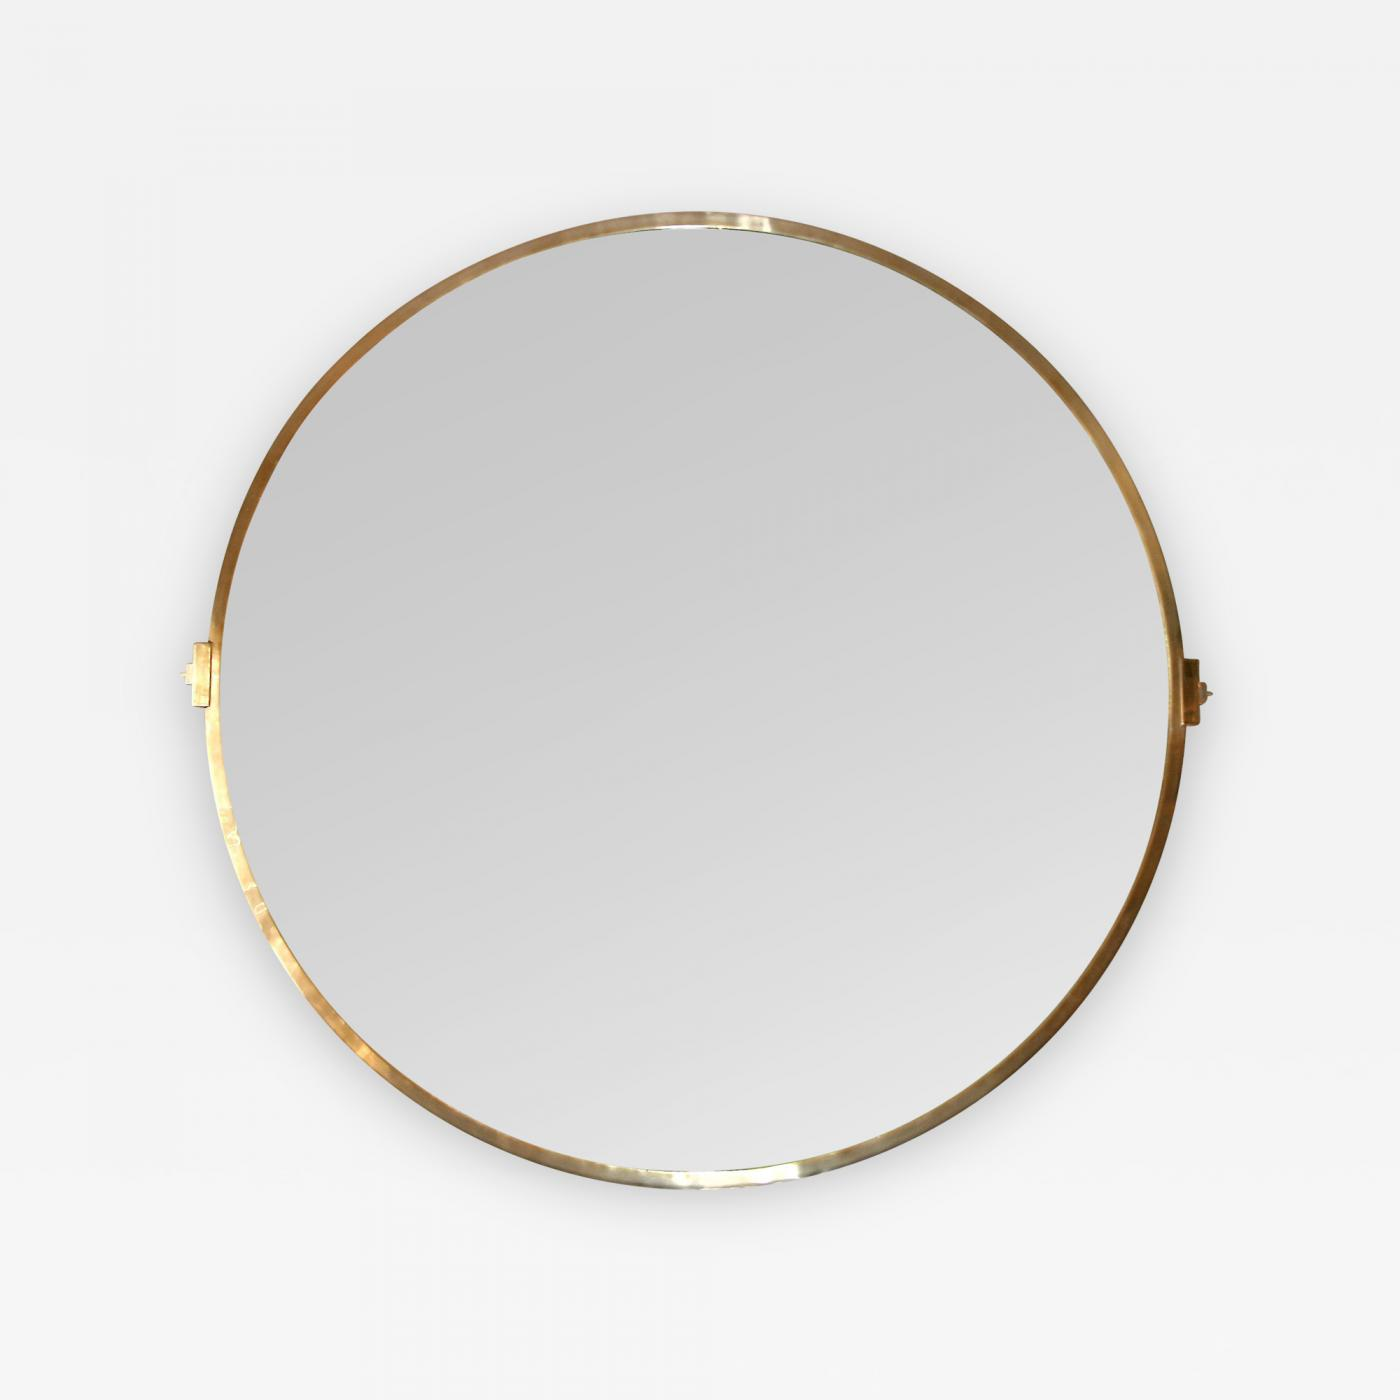 listings  decorative arts  mirrors  wall mirrors · large custom roundbrass mirror. large custom round brass mirror